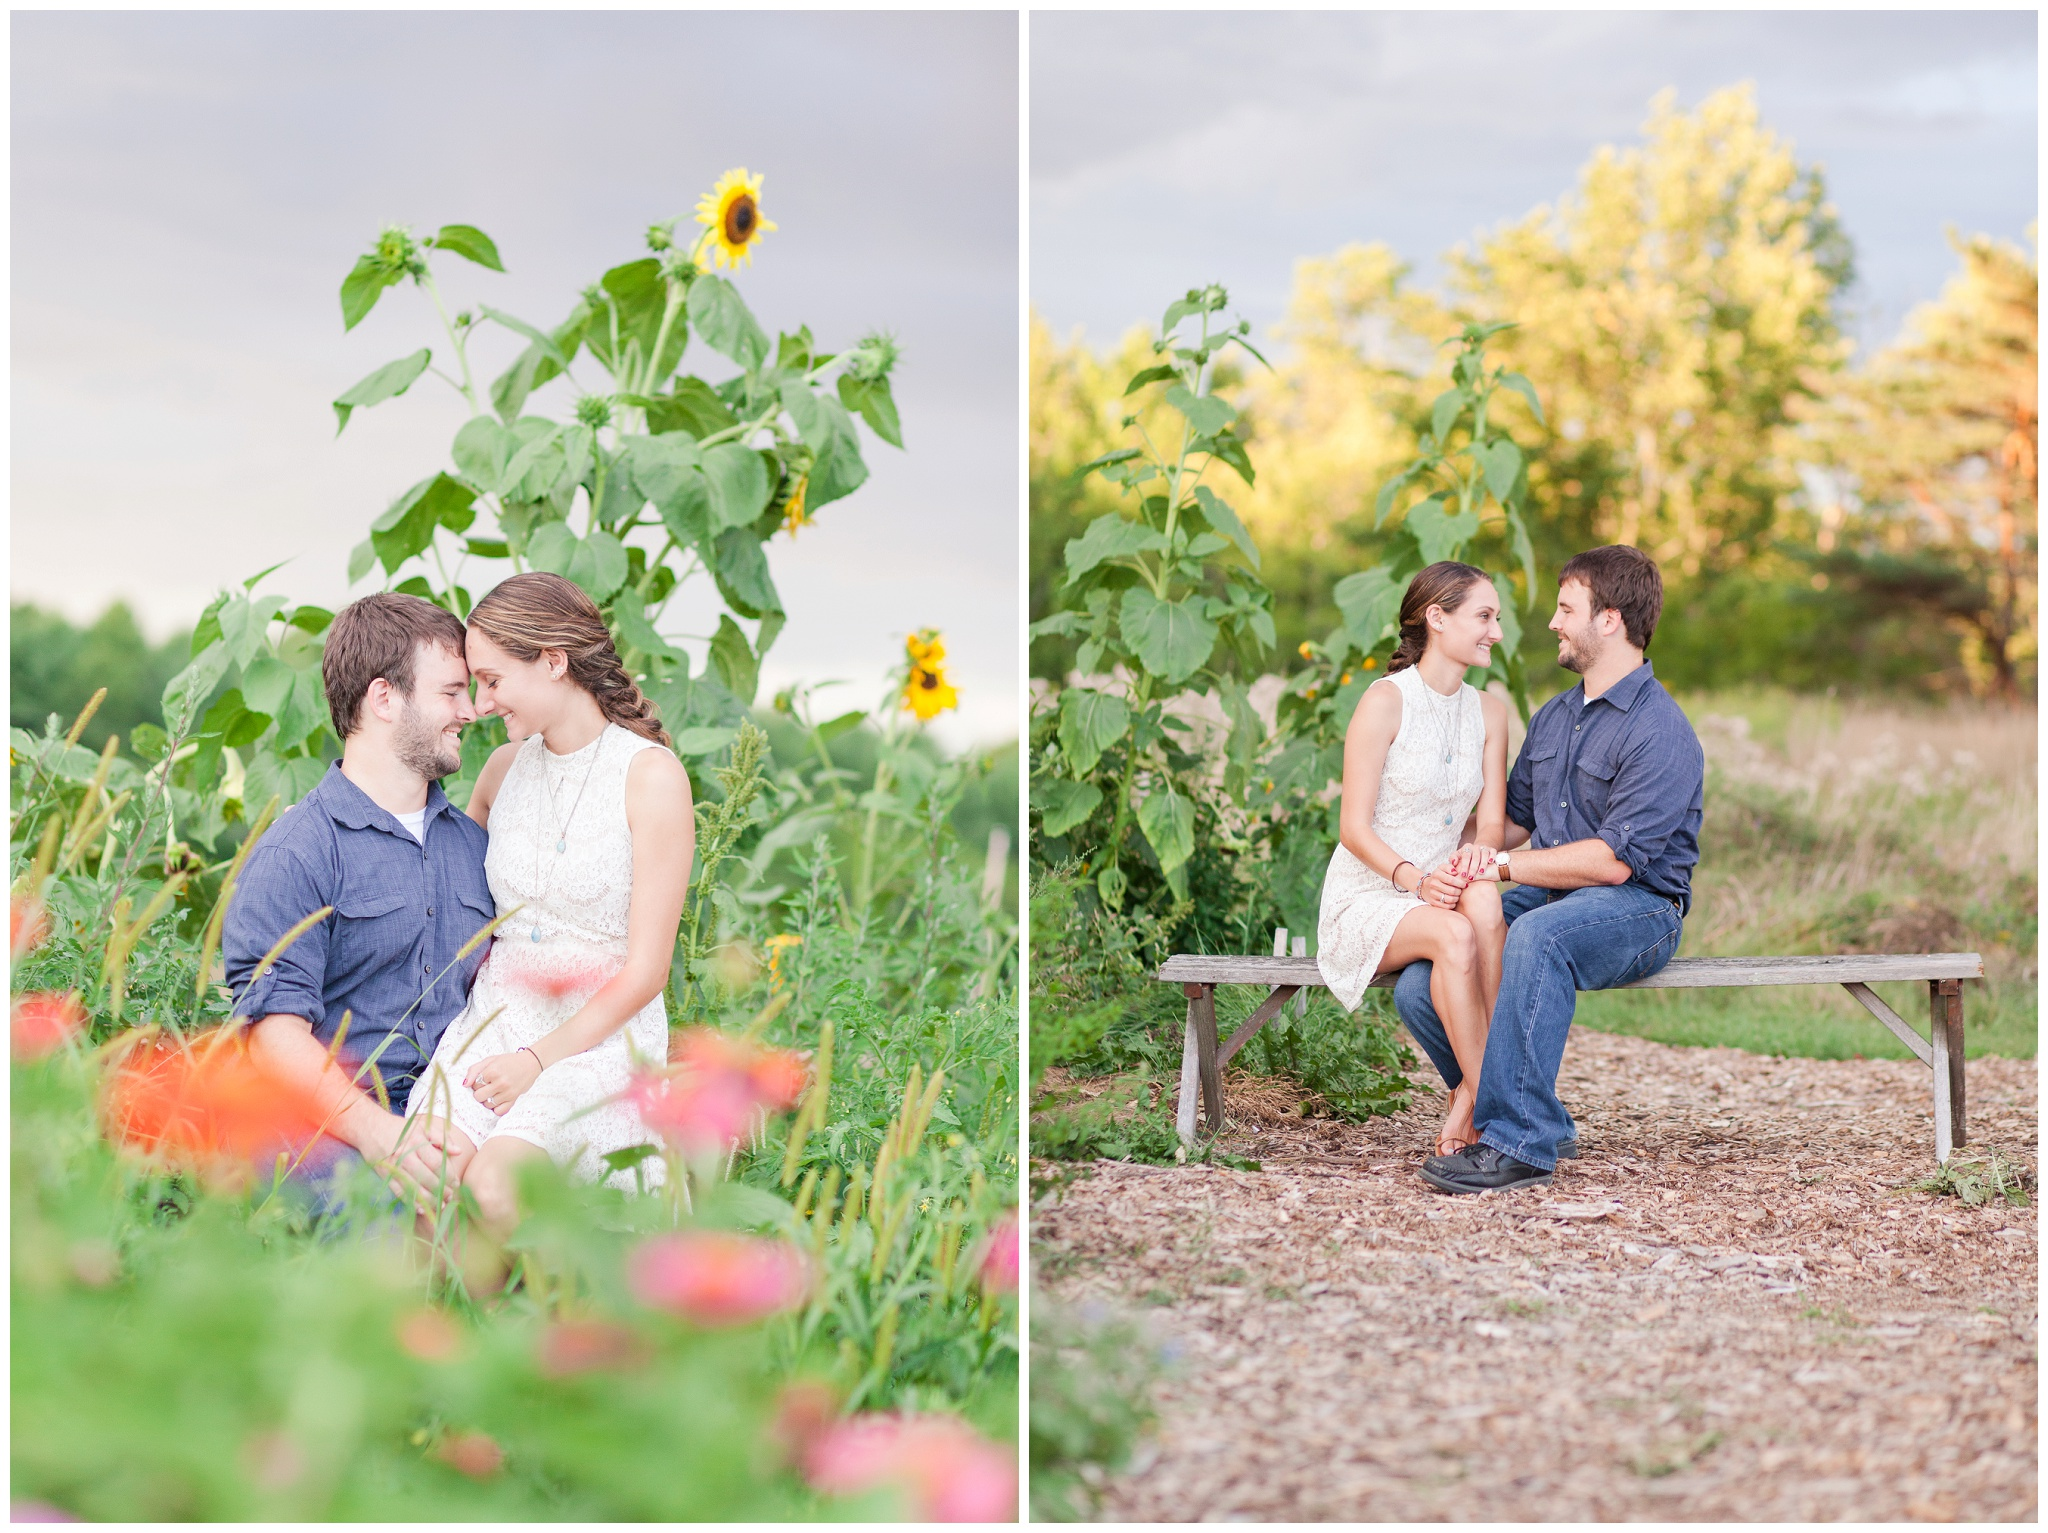 Exeter NH Wedding Photographer | Wagon Hill Durham NH | Engagement Session